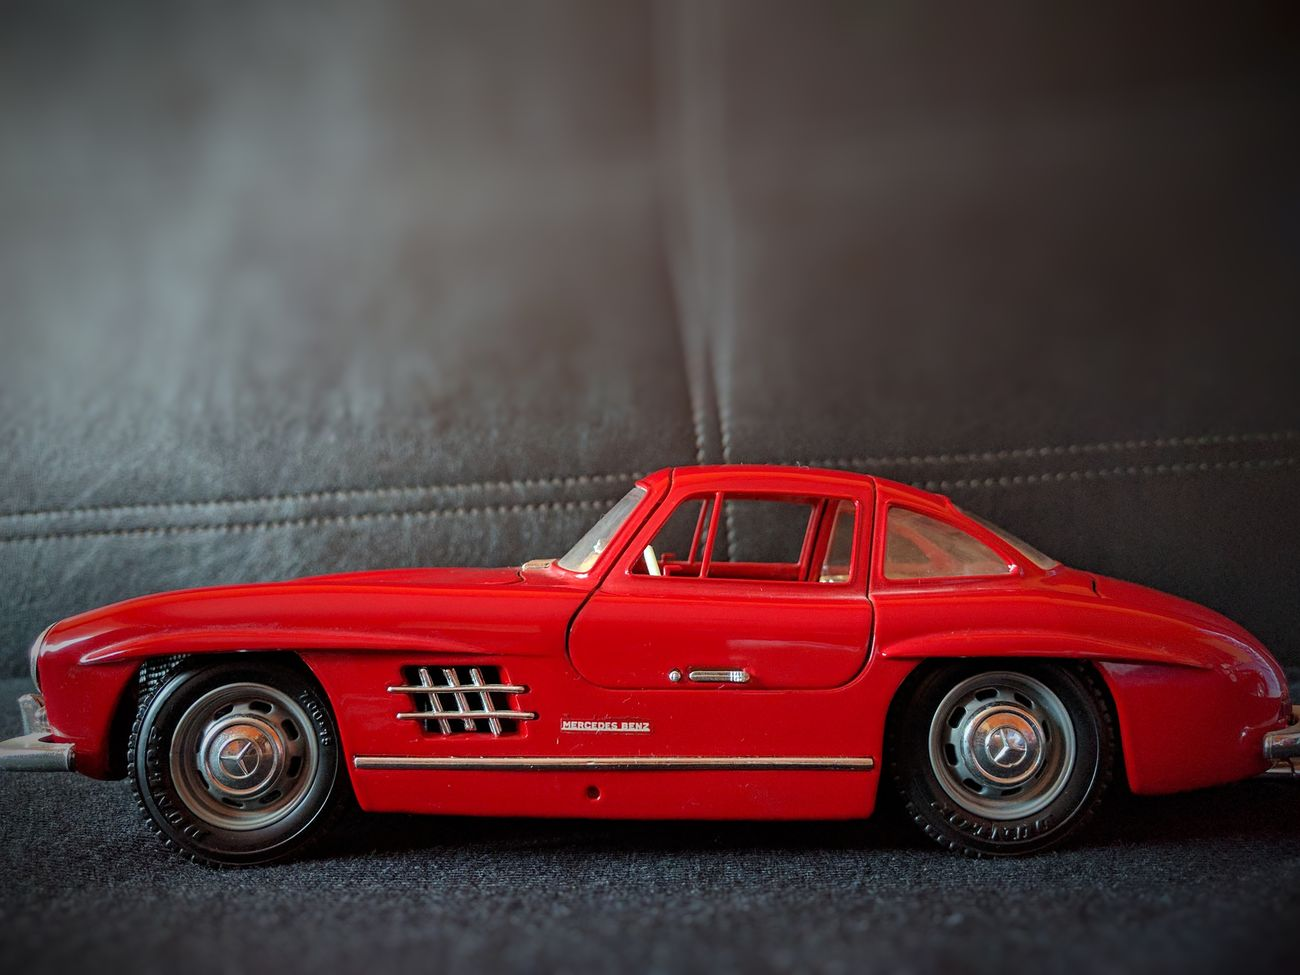 Car Red Sports Car Transportation Sports Track Tire Auto Racing No People Sports Race Old-fashioned Racecar Collector's Car Indoors  Day